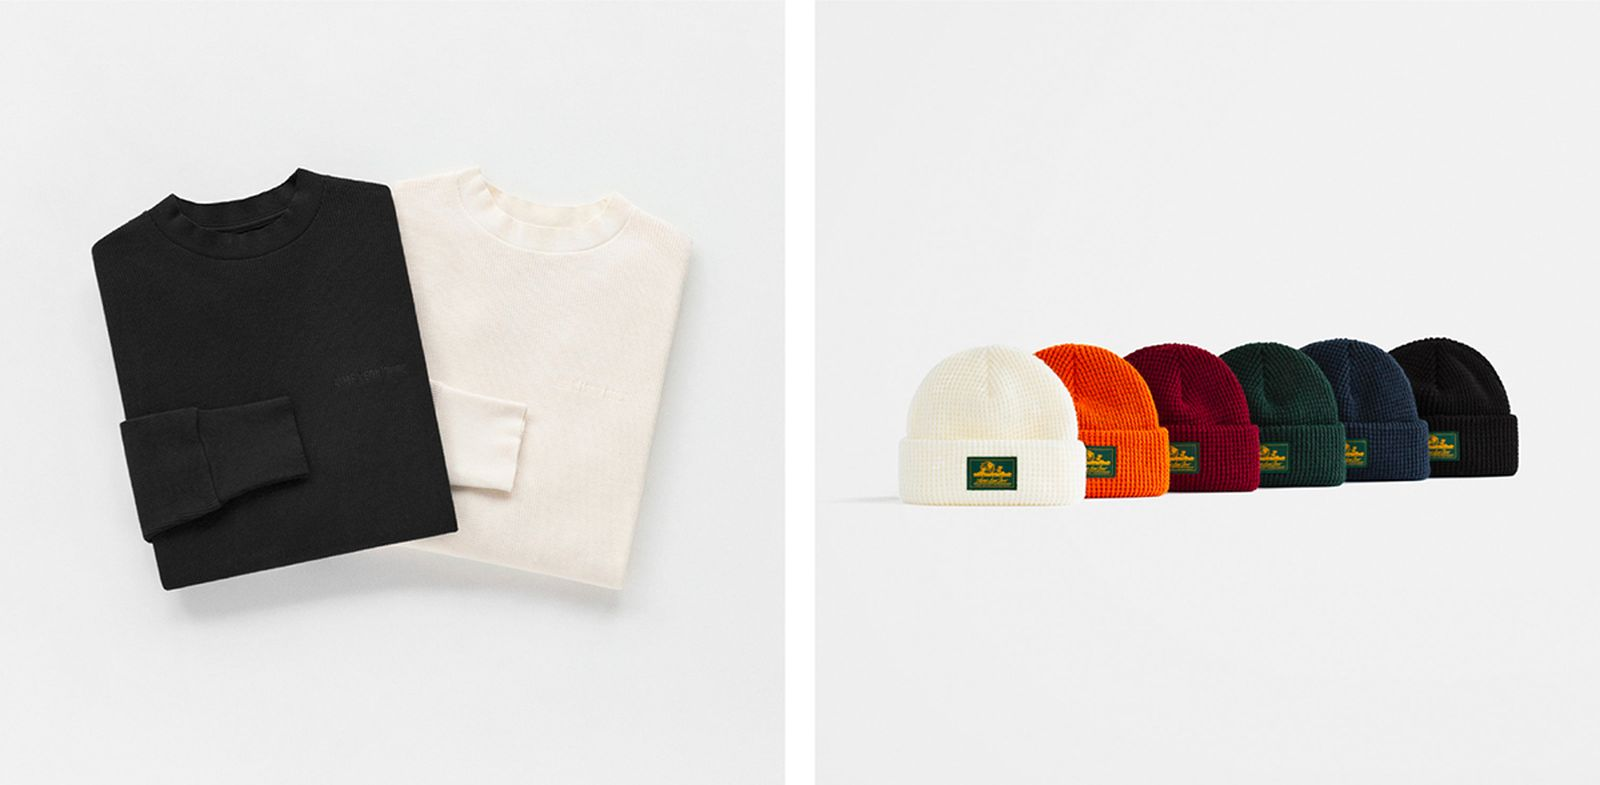 Aimé Leon Dore FW19 Uniform Program crewnecks beanies